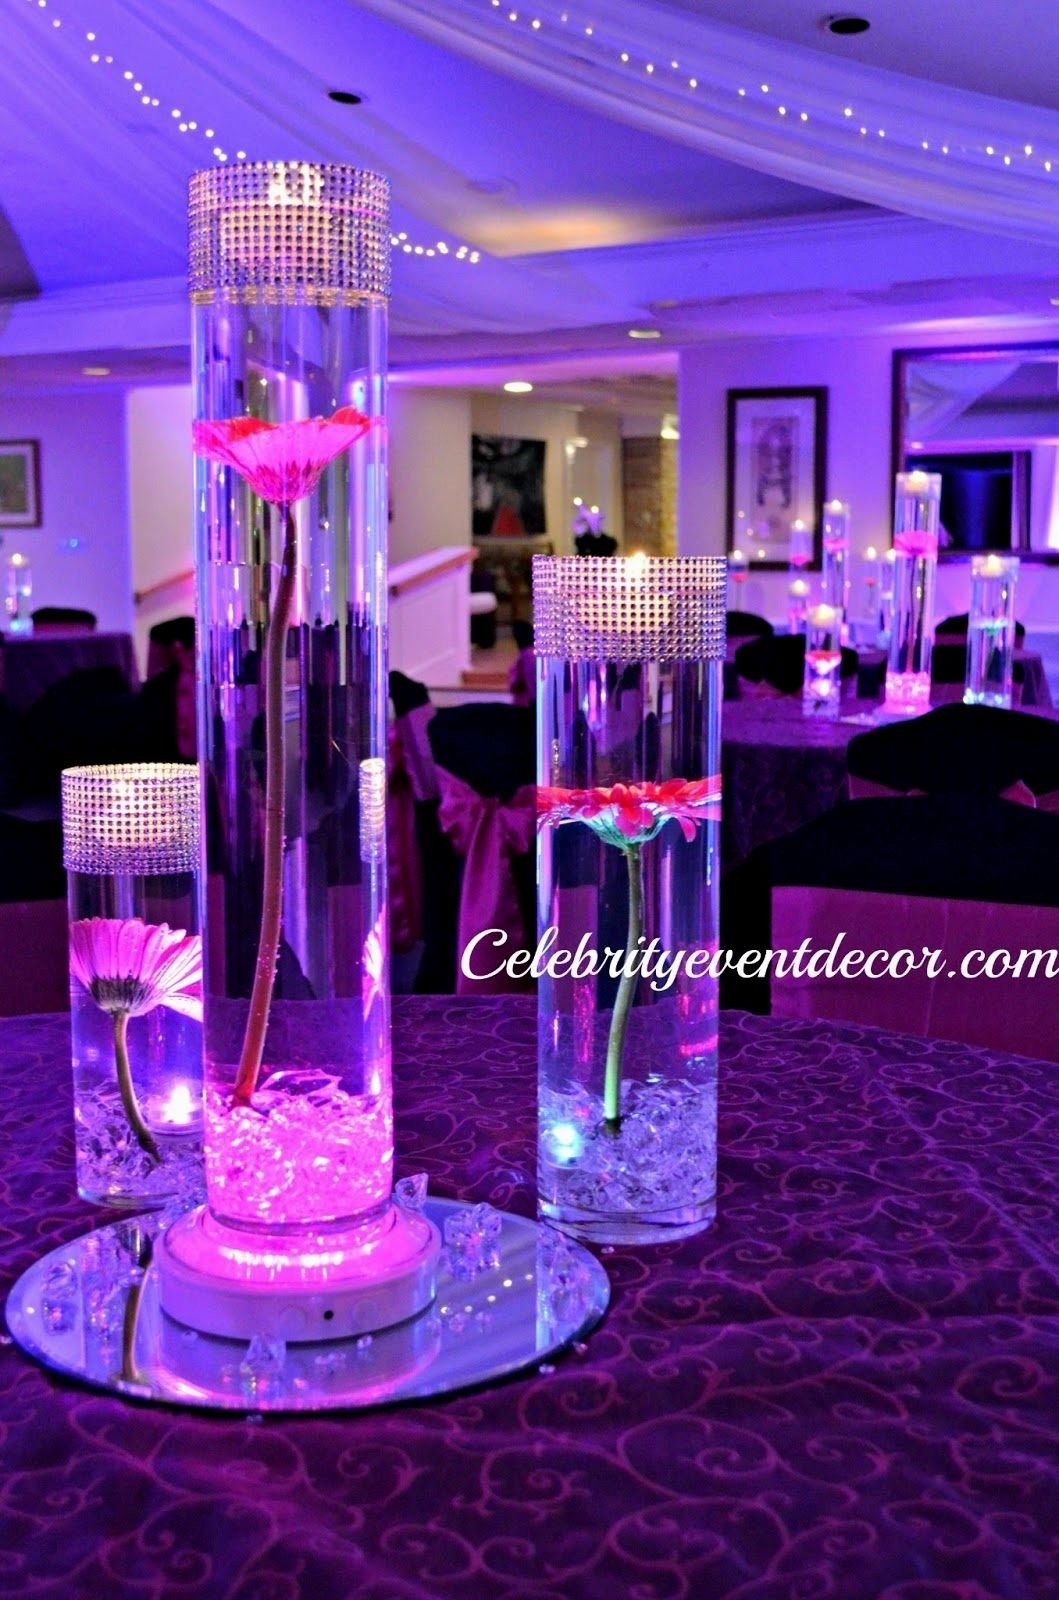 10 Attractive Sweet 16 Party Ideas For Boys ideas for sweet 16 birthday party themes decorating of party 4 2021